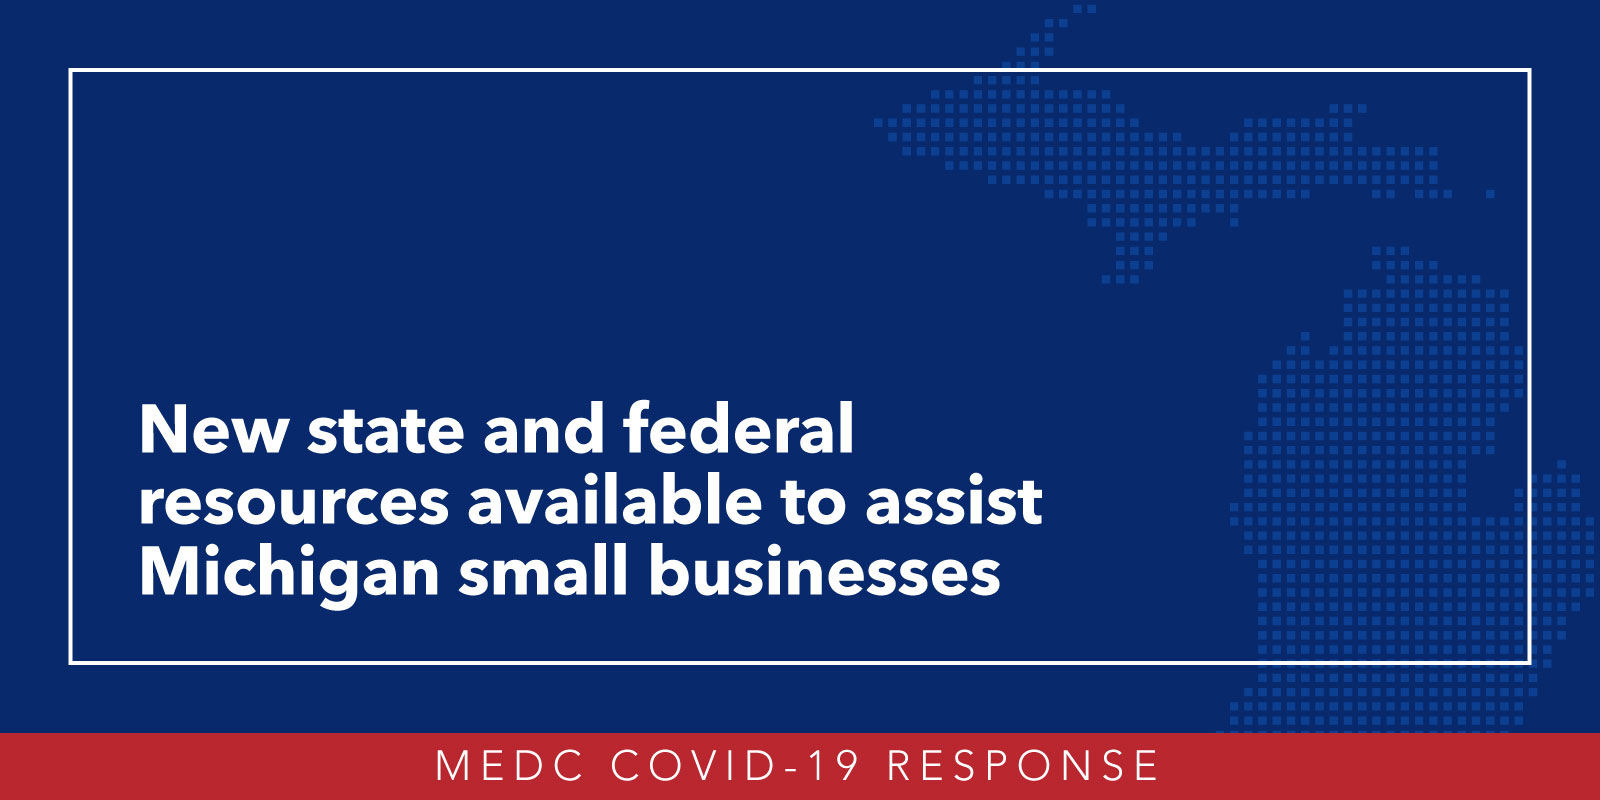 New Funding Tools Available For Michigan S Small Businesses Impacted By Covid 19 Michigan Business